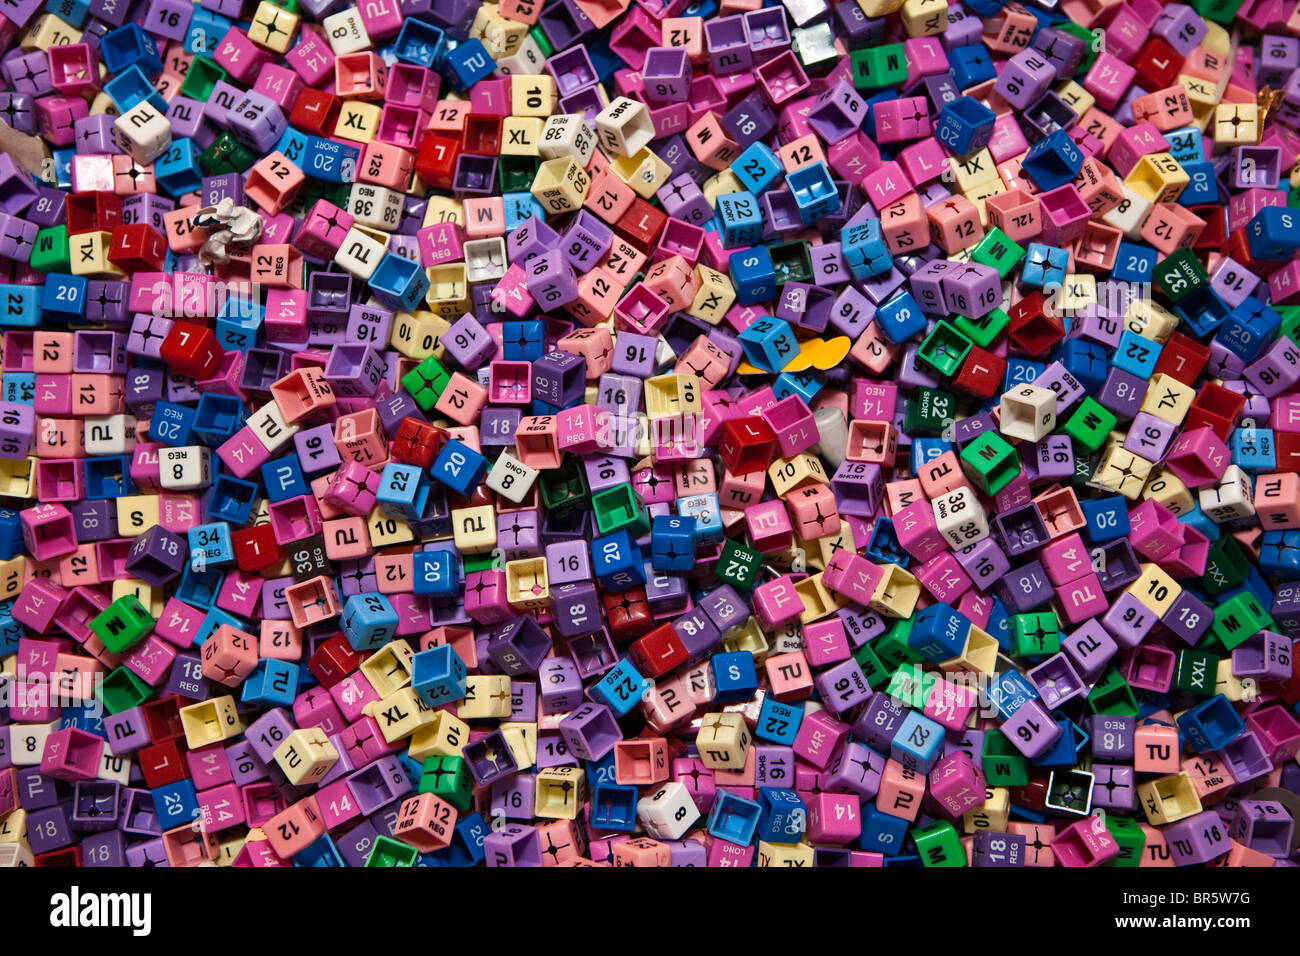 Hundreds of plastic clothes tags, showing all the sizes and different colour codings. - Stock Image